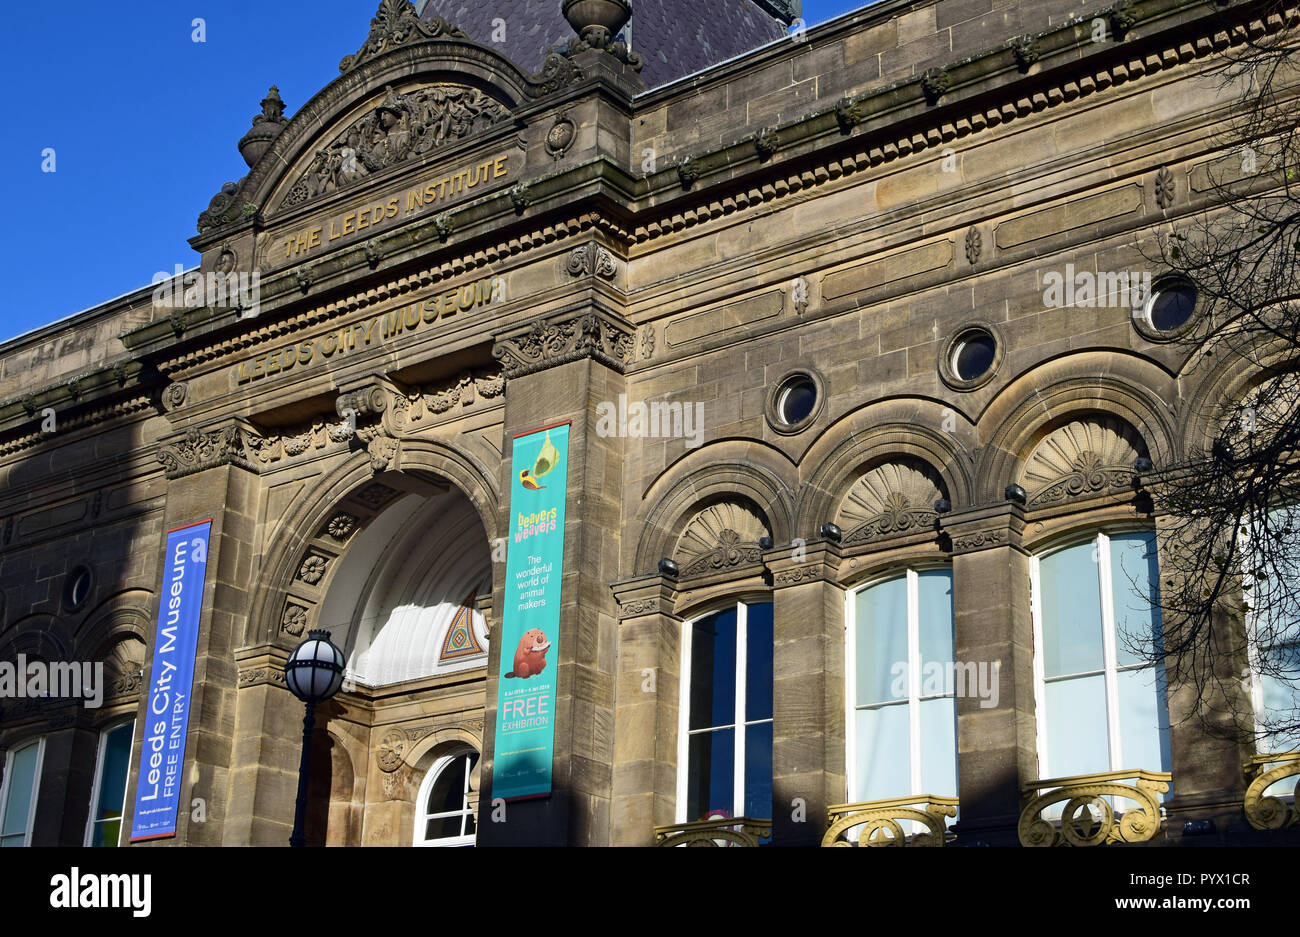 Leeds City Museum, The Leeds Institute, West Yorkshire, UK - Stock Image